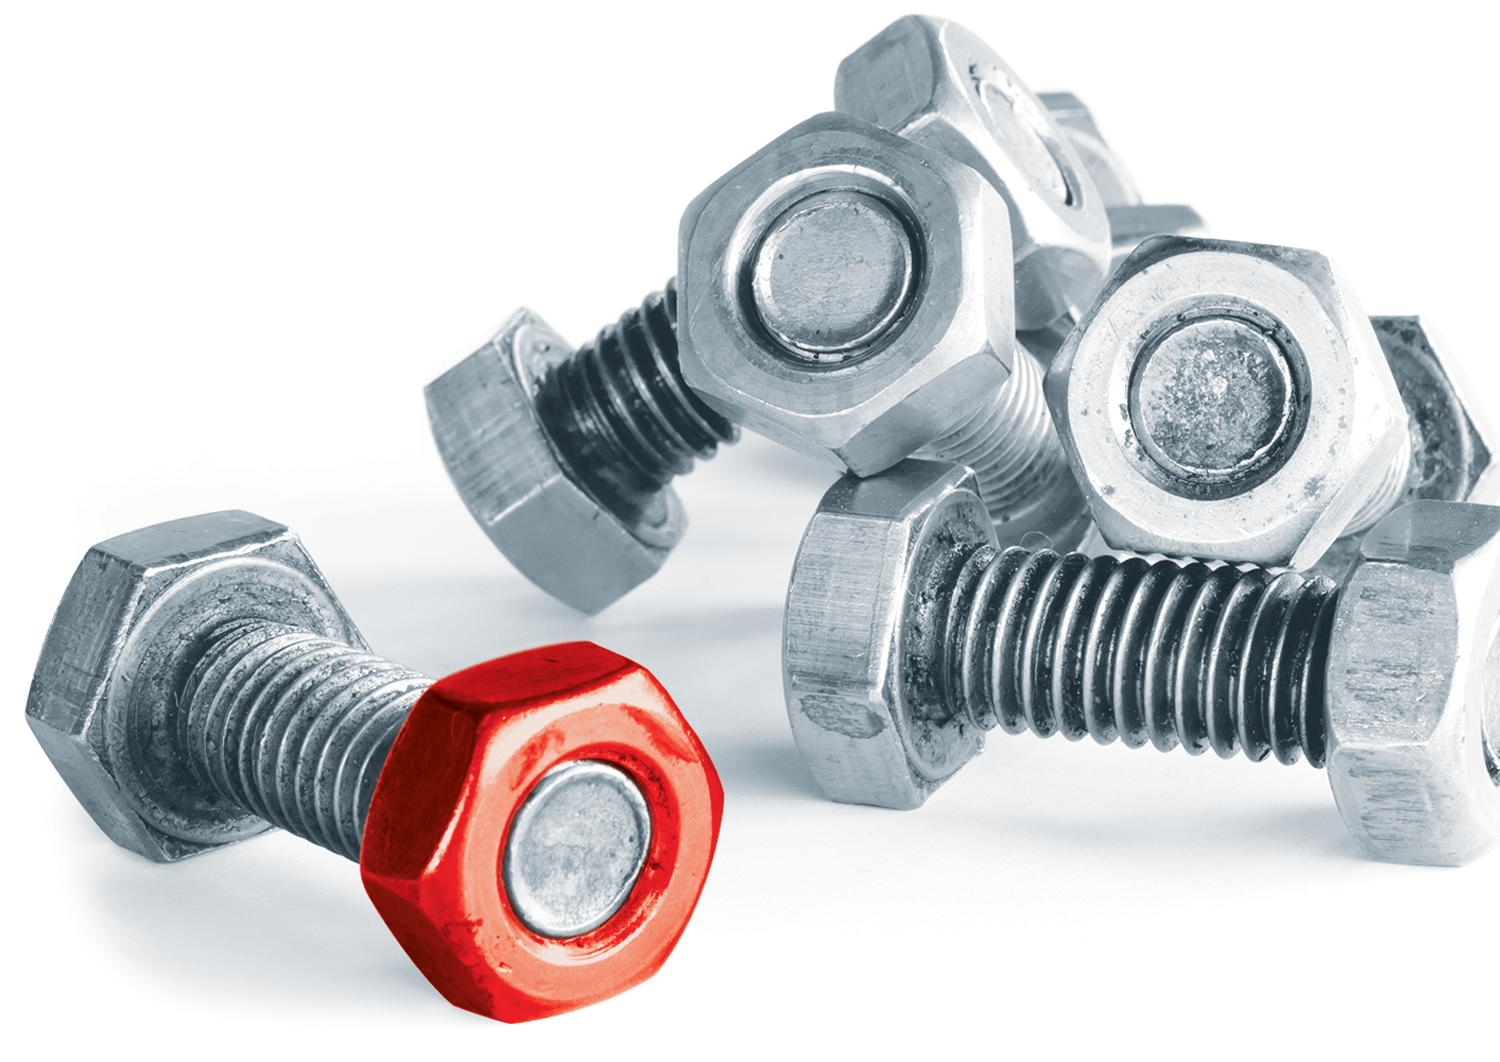 Mechanism nut and bolts with one nut picked out in red